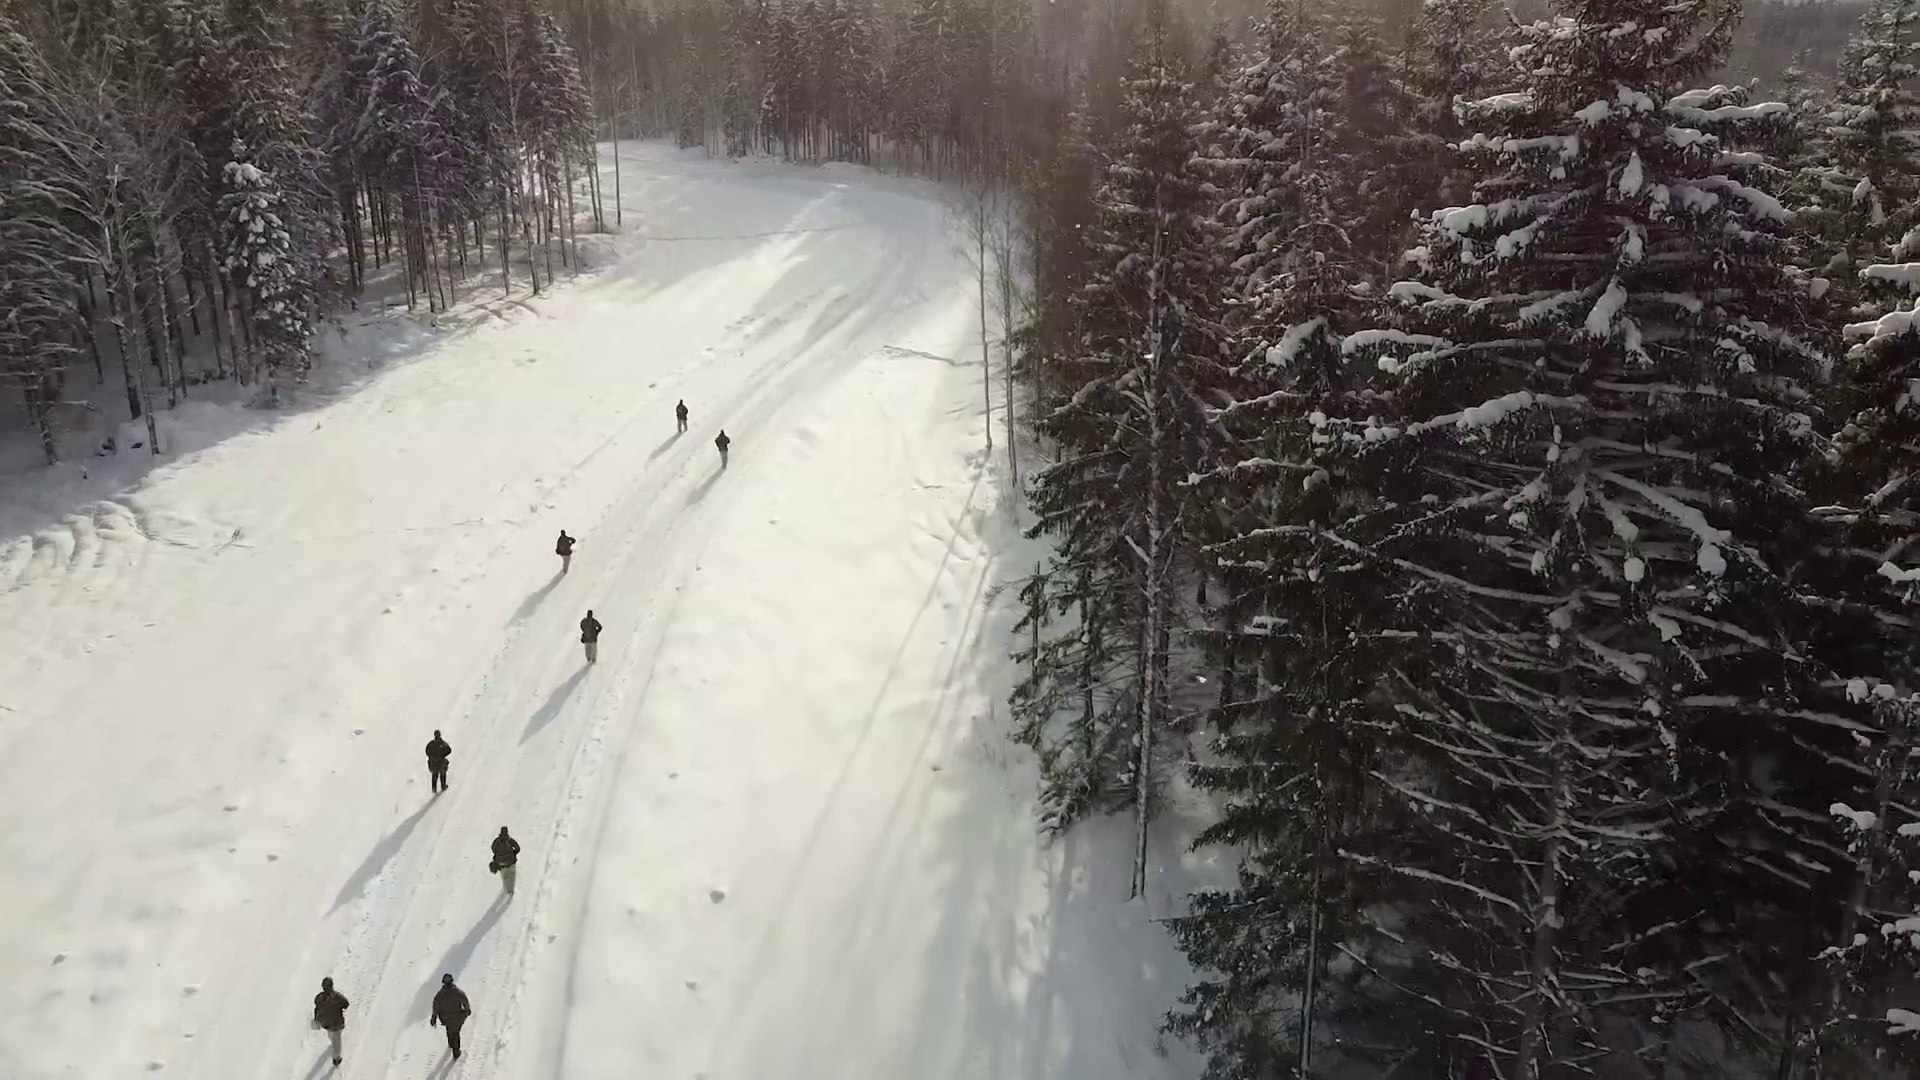 UK and Estonian Troops Conduct Winter Training in Freezing Conditions